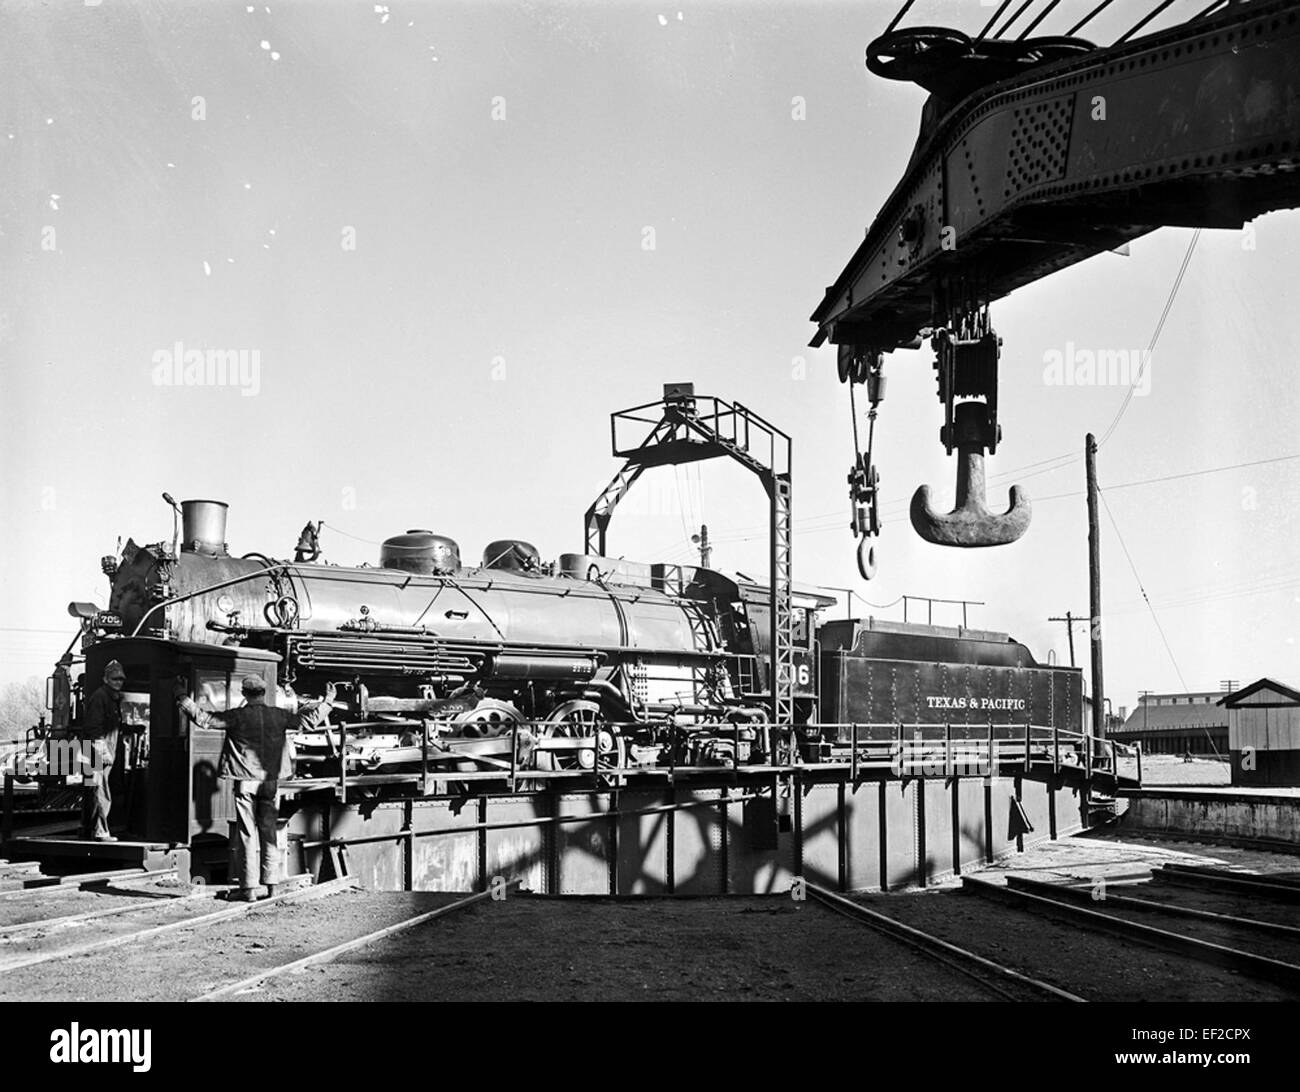 [Locomotive 706 on Turntable, Texas & Pacific Railway ... Pacific Railway Company